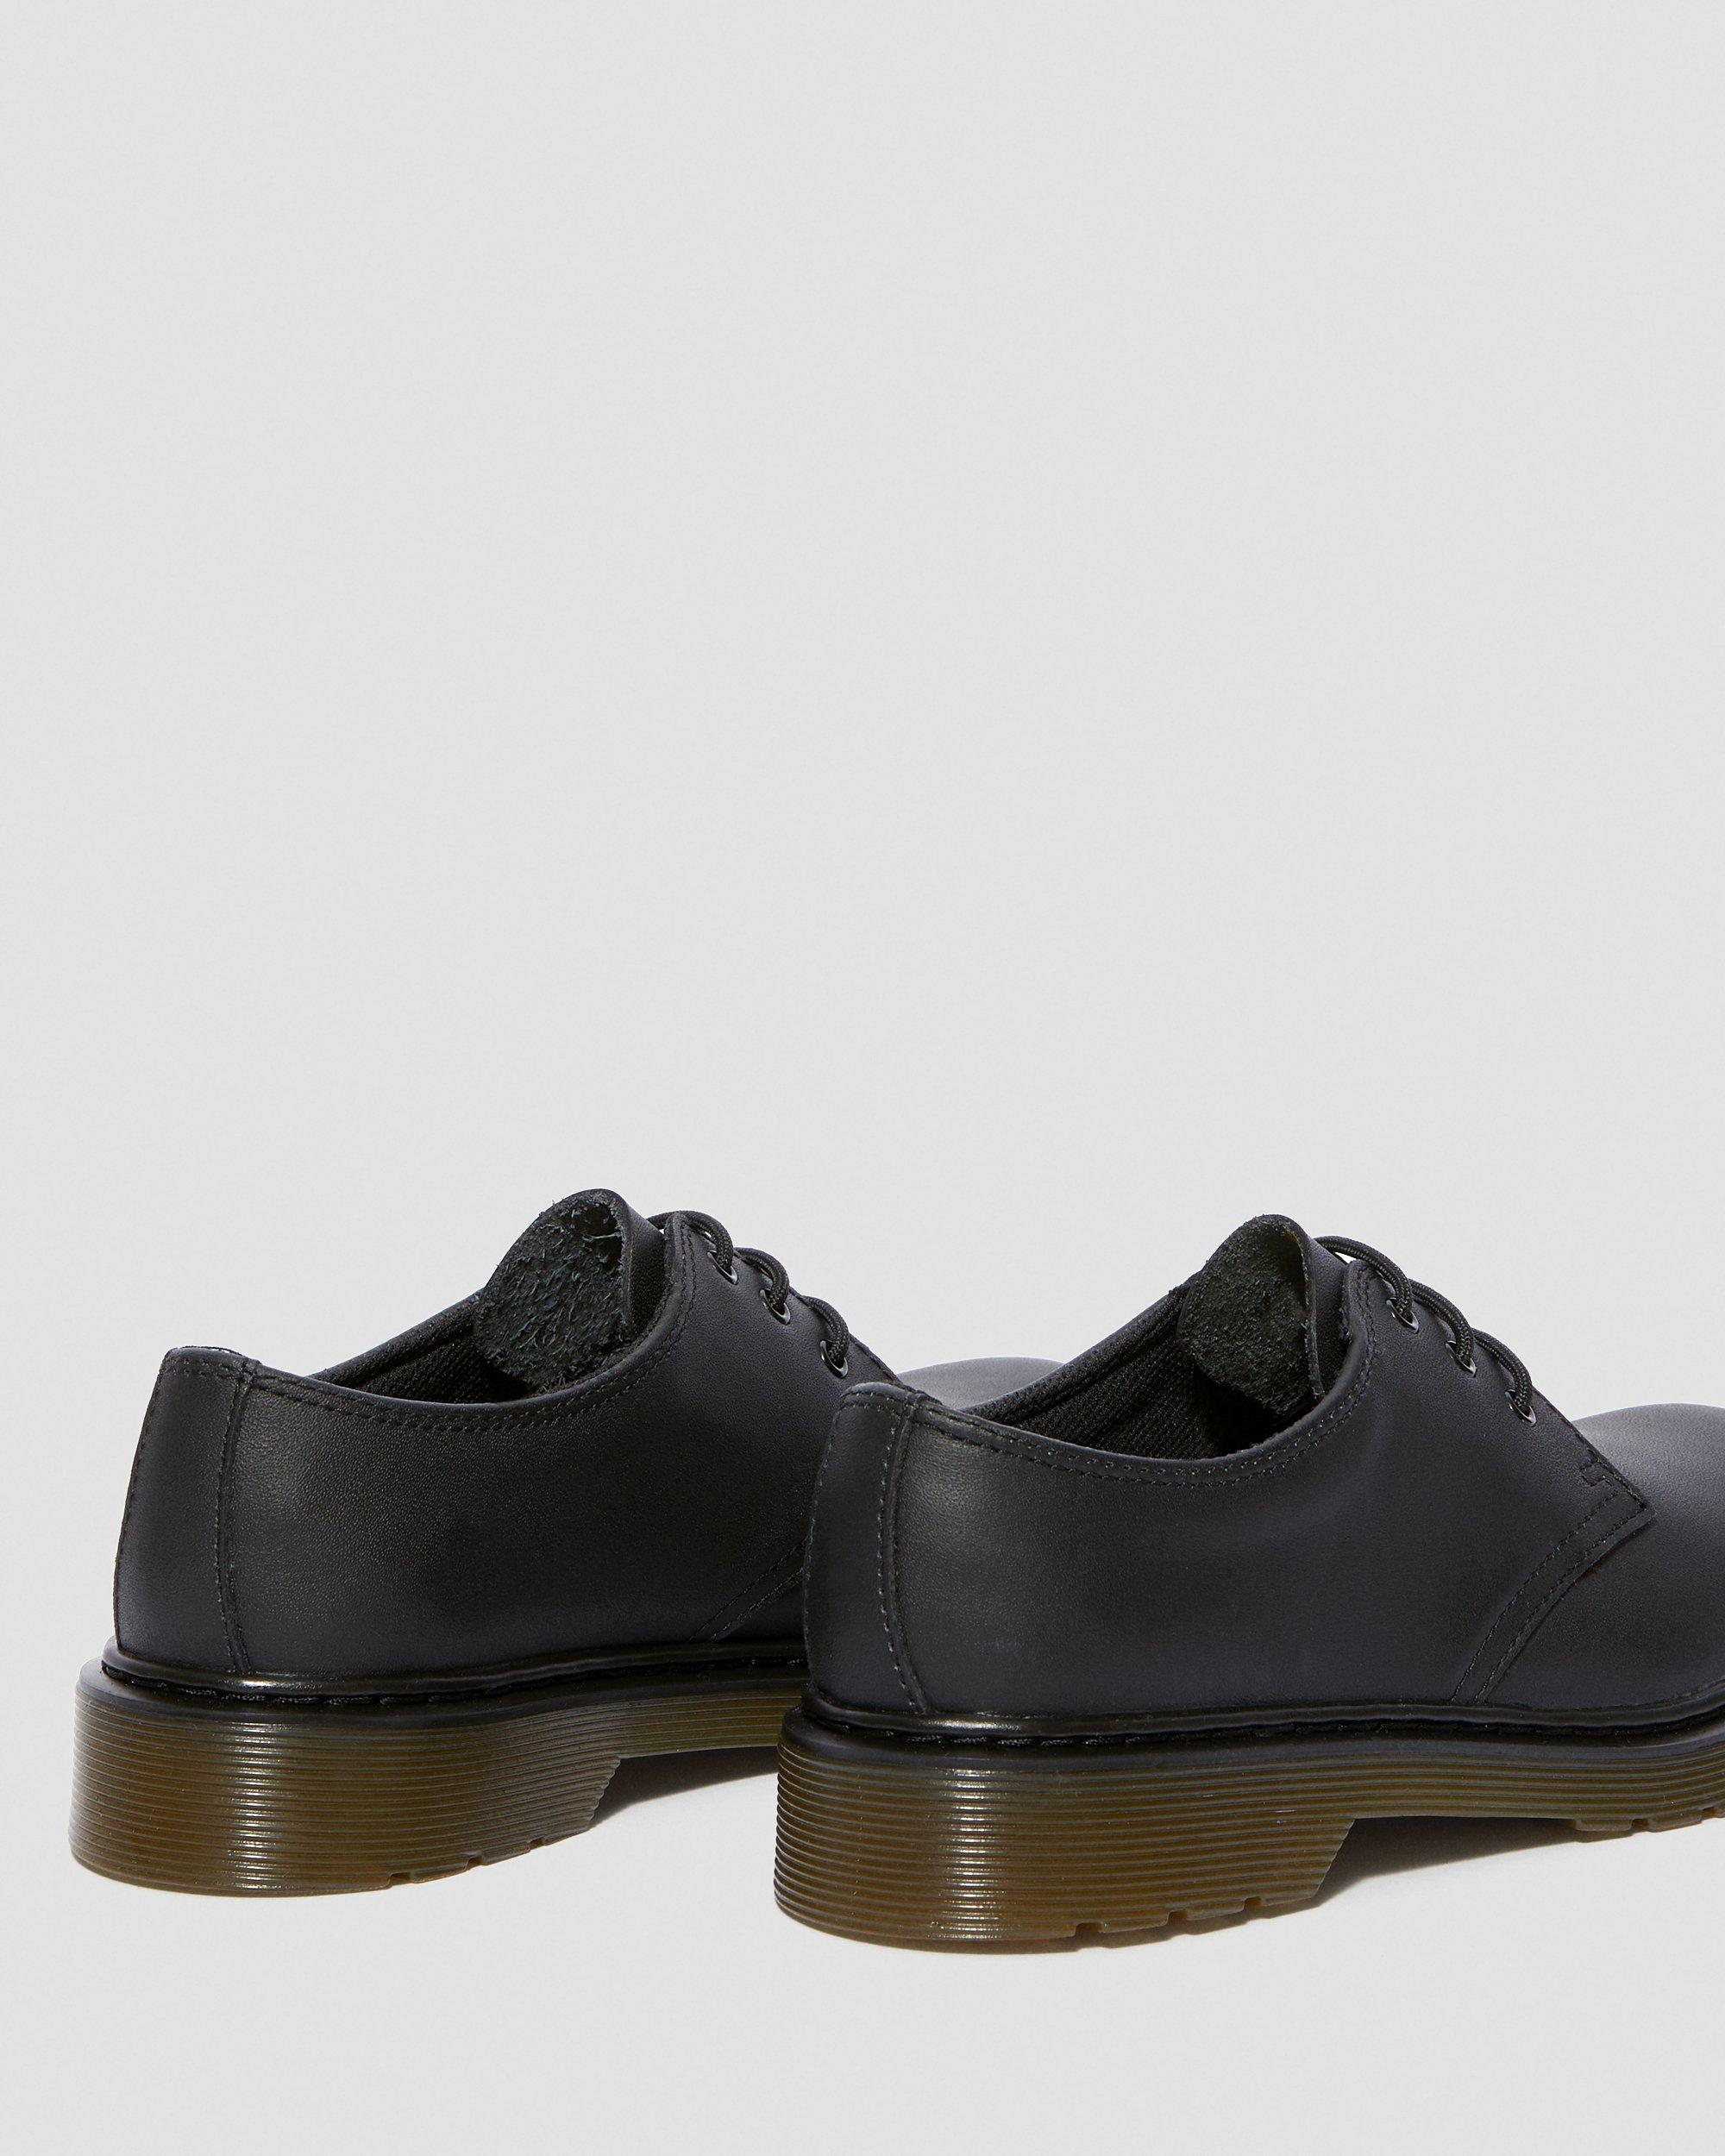 1461 YOUTH LEATHER SHOES   Dr. Martens UK